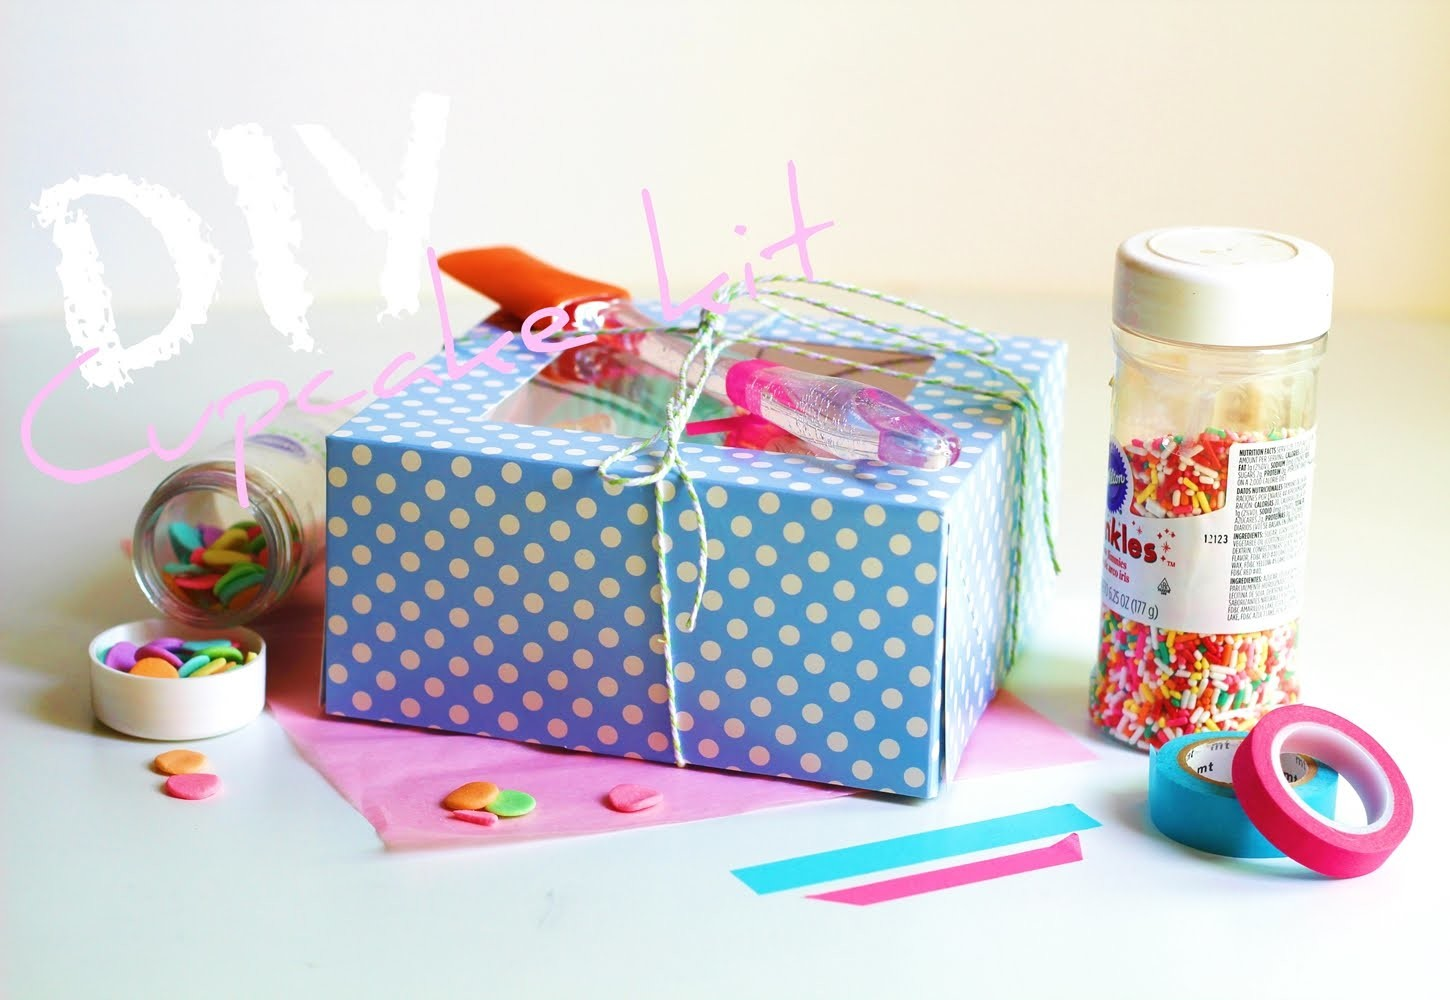 DIY | Cupcake decorating kit 'Gift